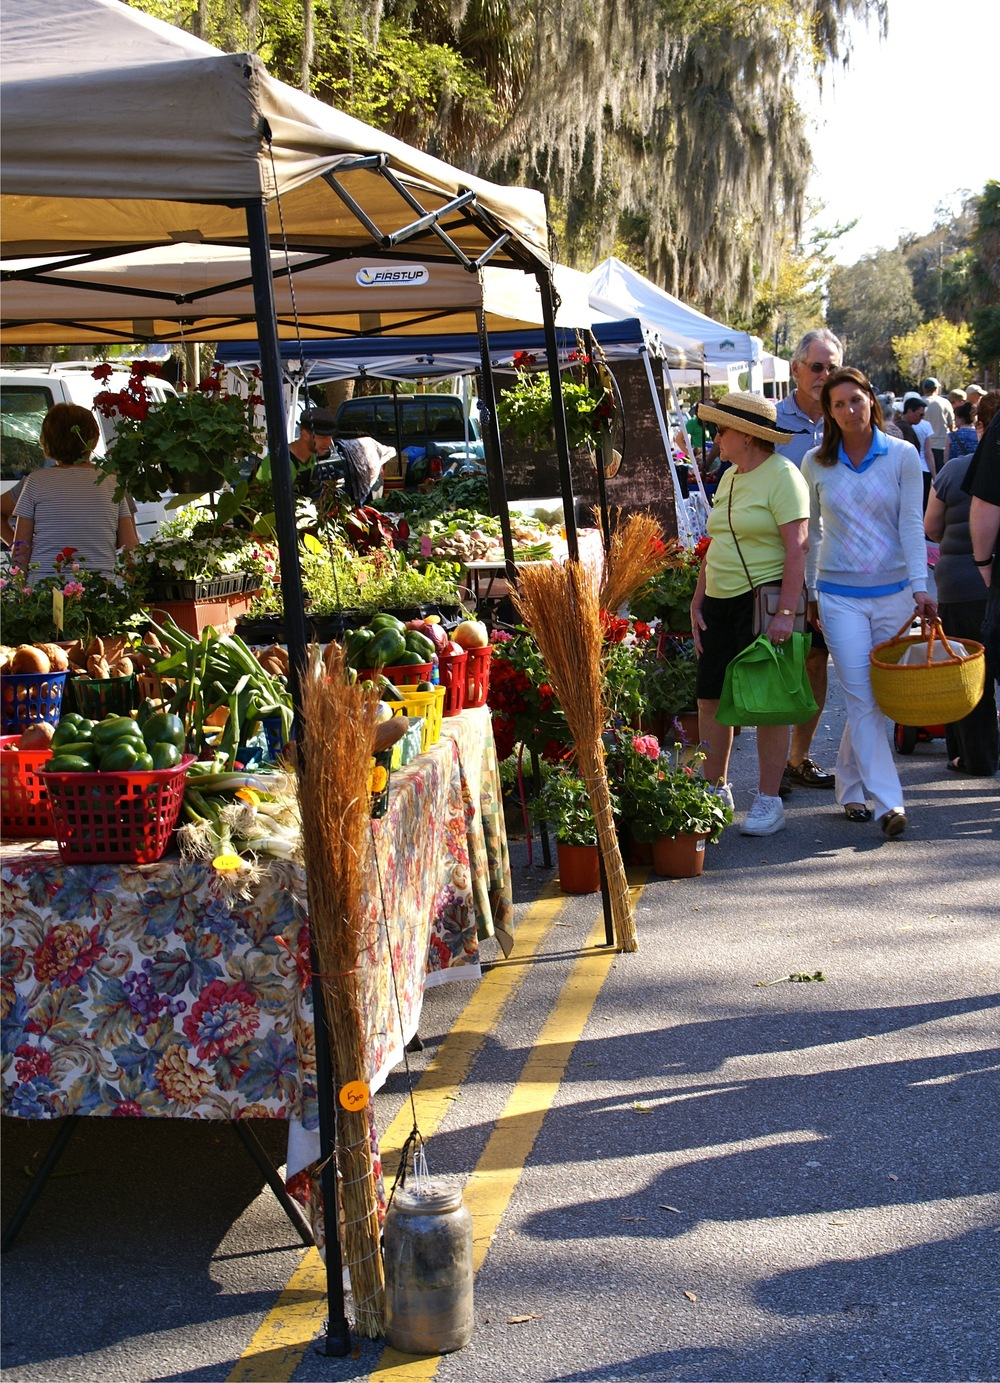 Farmers markets, like the one in downtown Bluffton, provide communities access to local food direct from the growers.